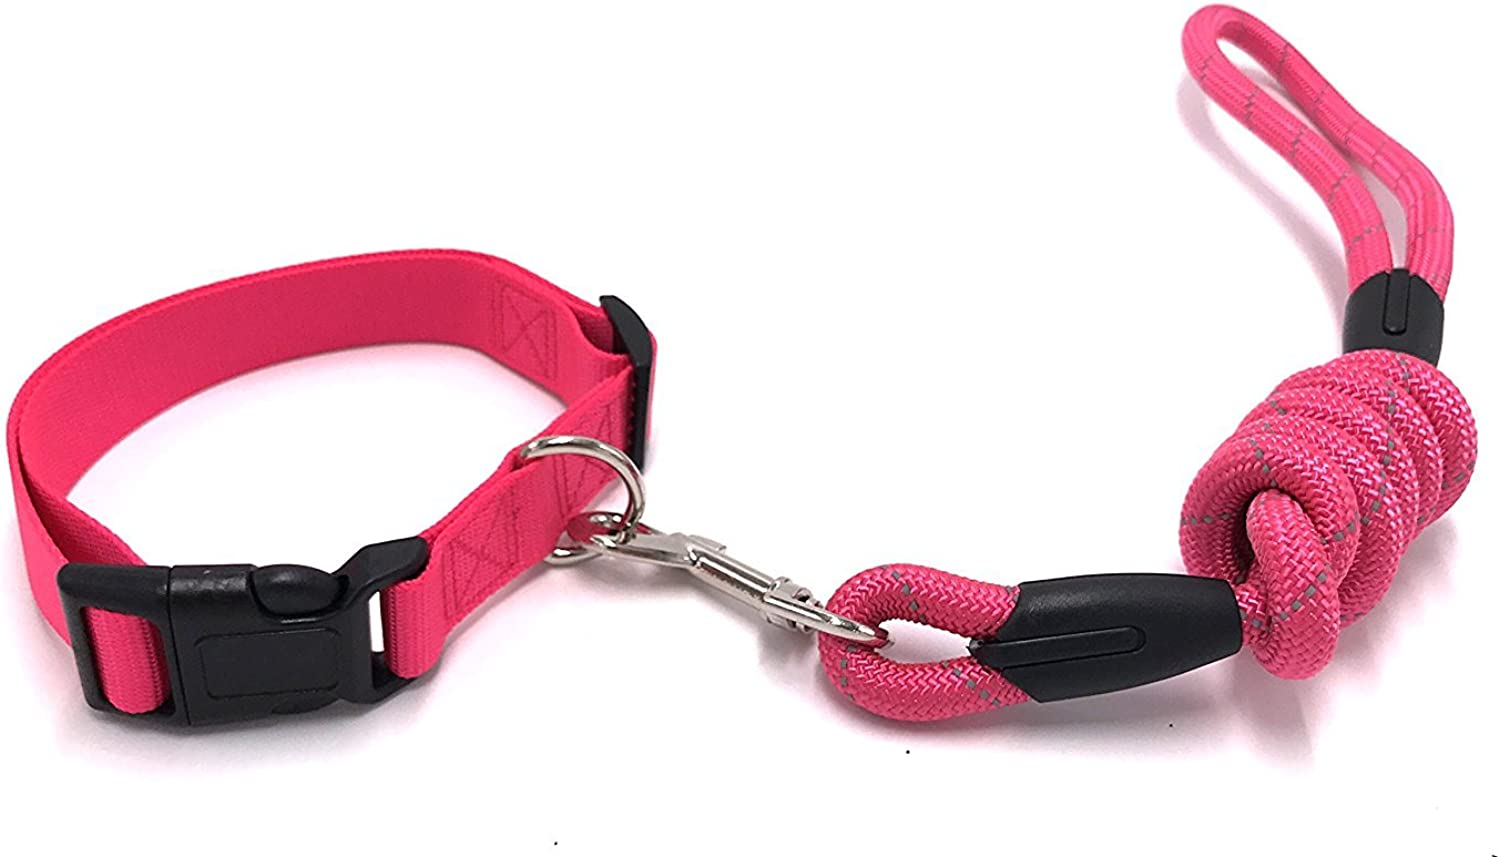 PetsCaptain Reflective Heavy Duty Round Rope Dog Leash (0.5  Diameter x 48  Long) & Reflective Dog Collar (1  Wide x Adjustable Neck Size 14.5 22 ) Set, Pink, PSCLC0546PNK